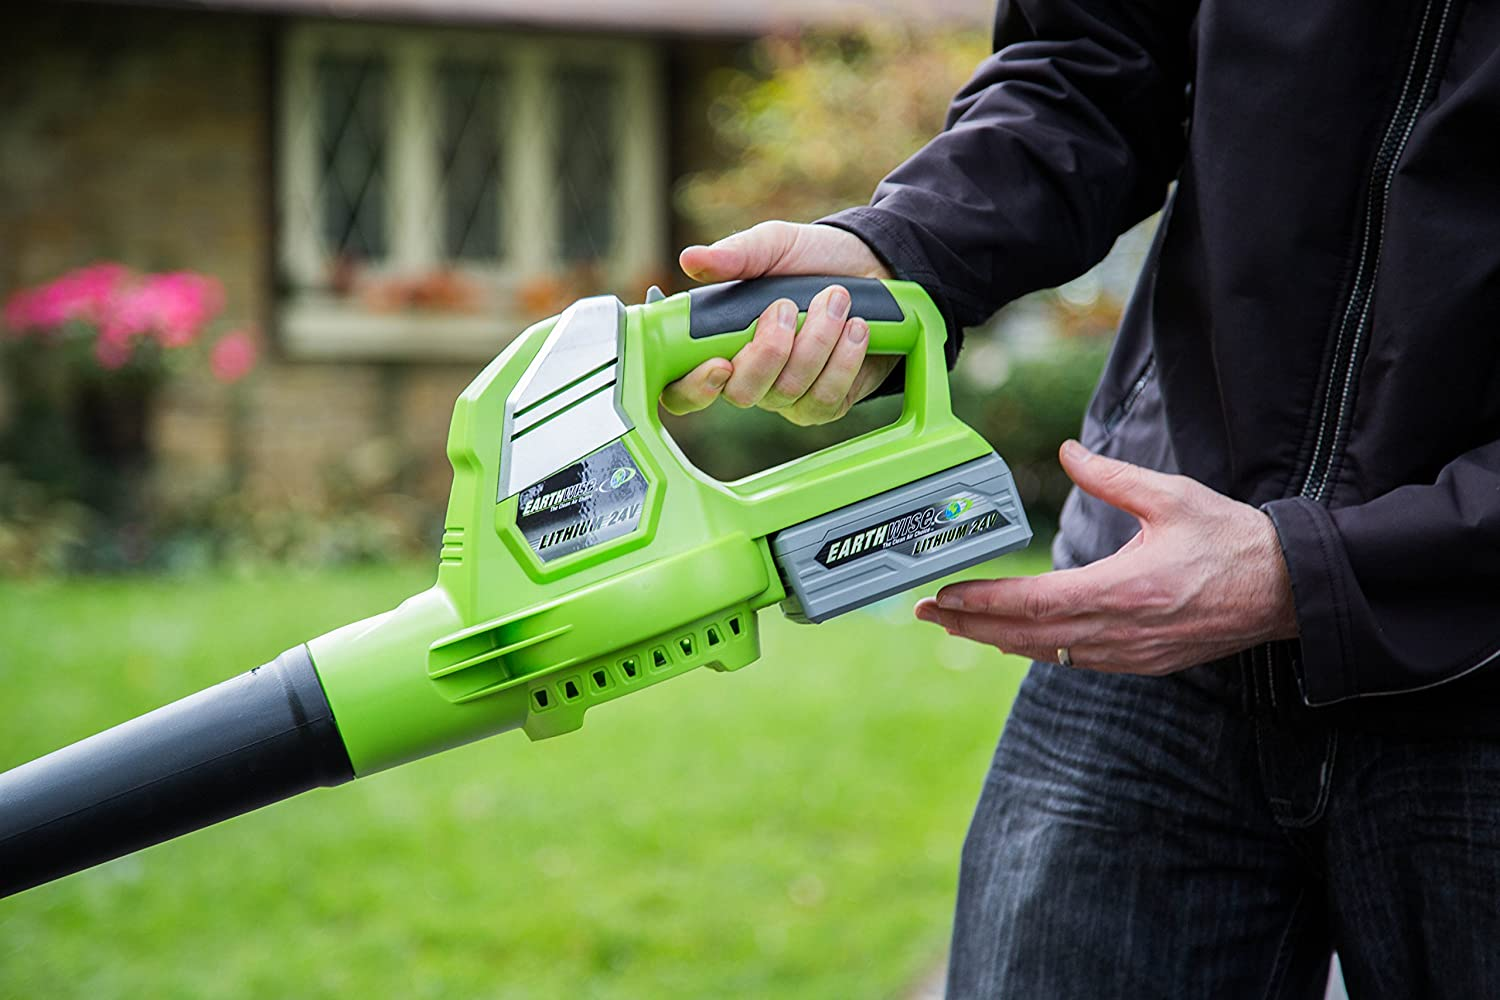 Earthwise LB20024 24-Volt Lithium Ion Cordless Electric Single Speed 130 MPH Leaf Blower